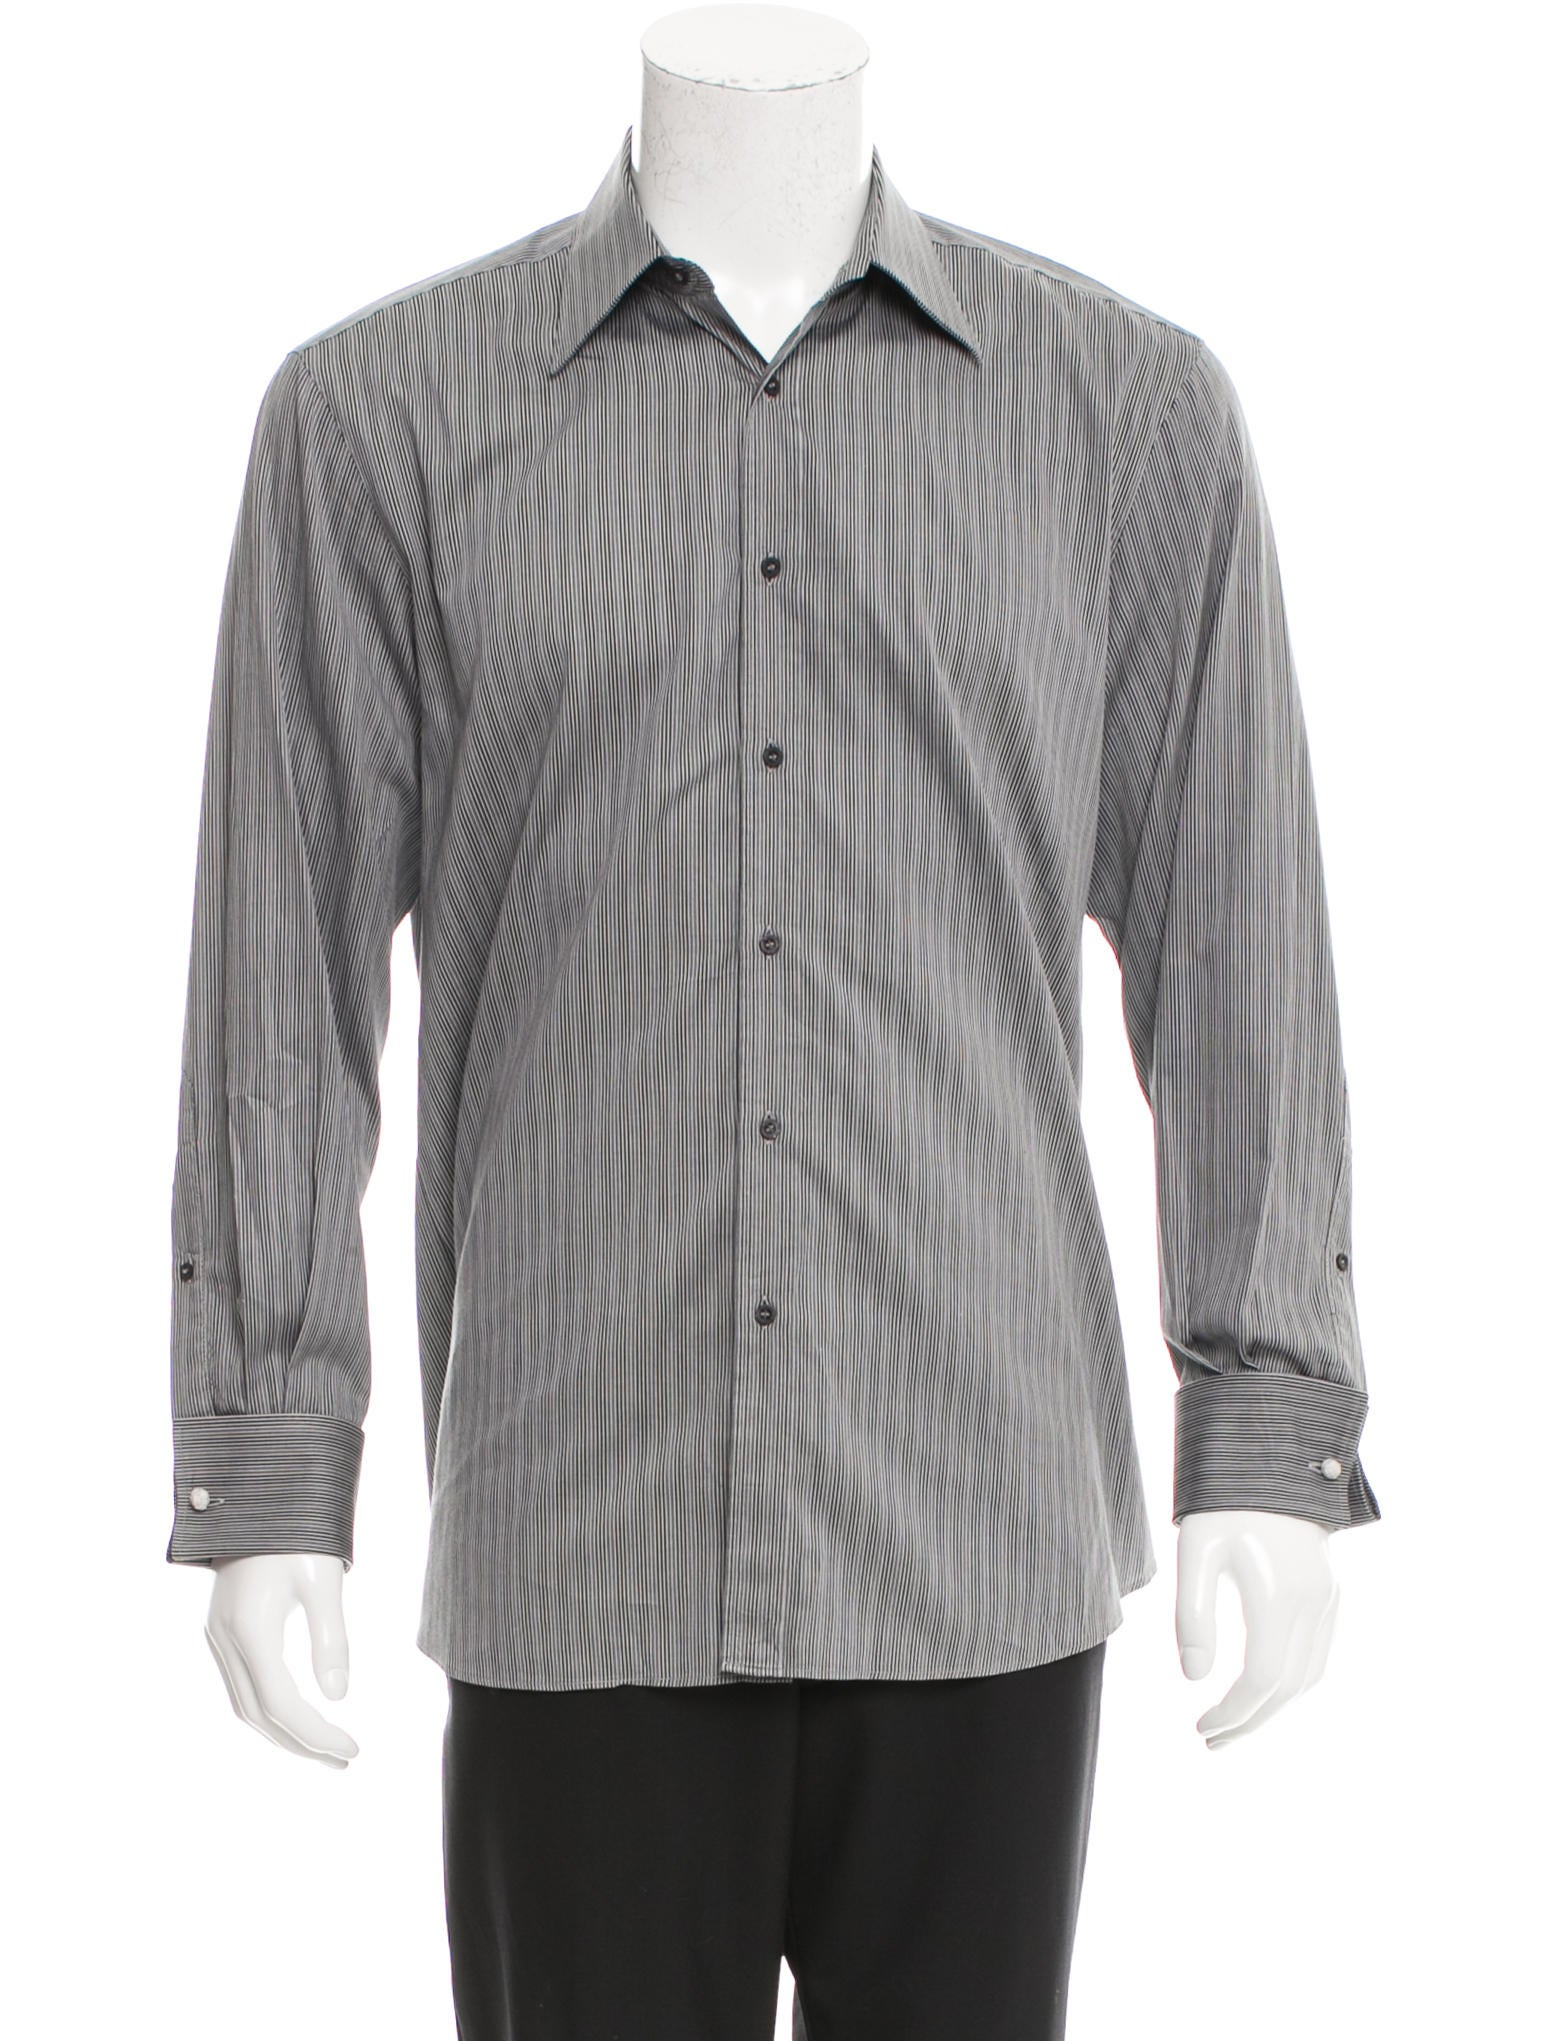 Gucci striped button up shirt clothing guc138423 the for Striped button up shirt mens